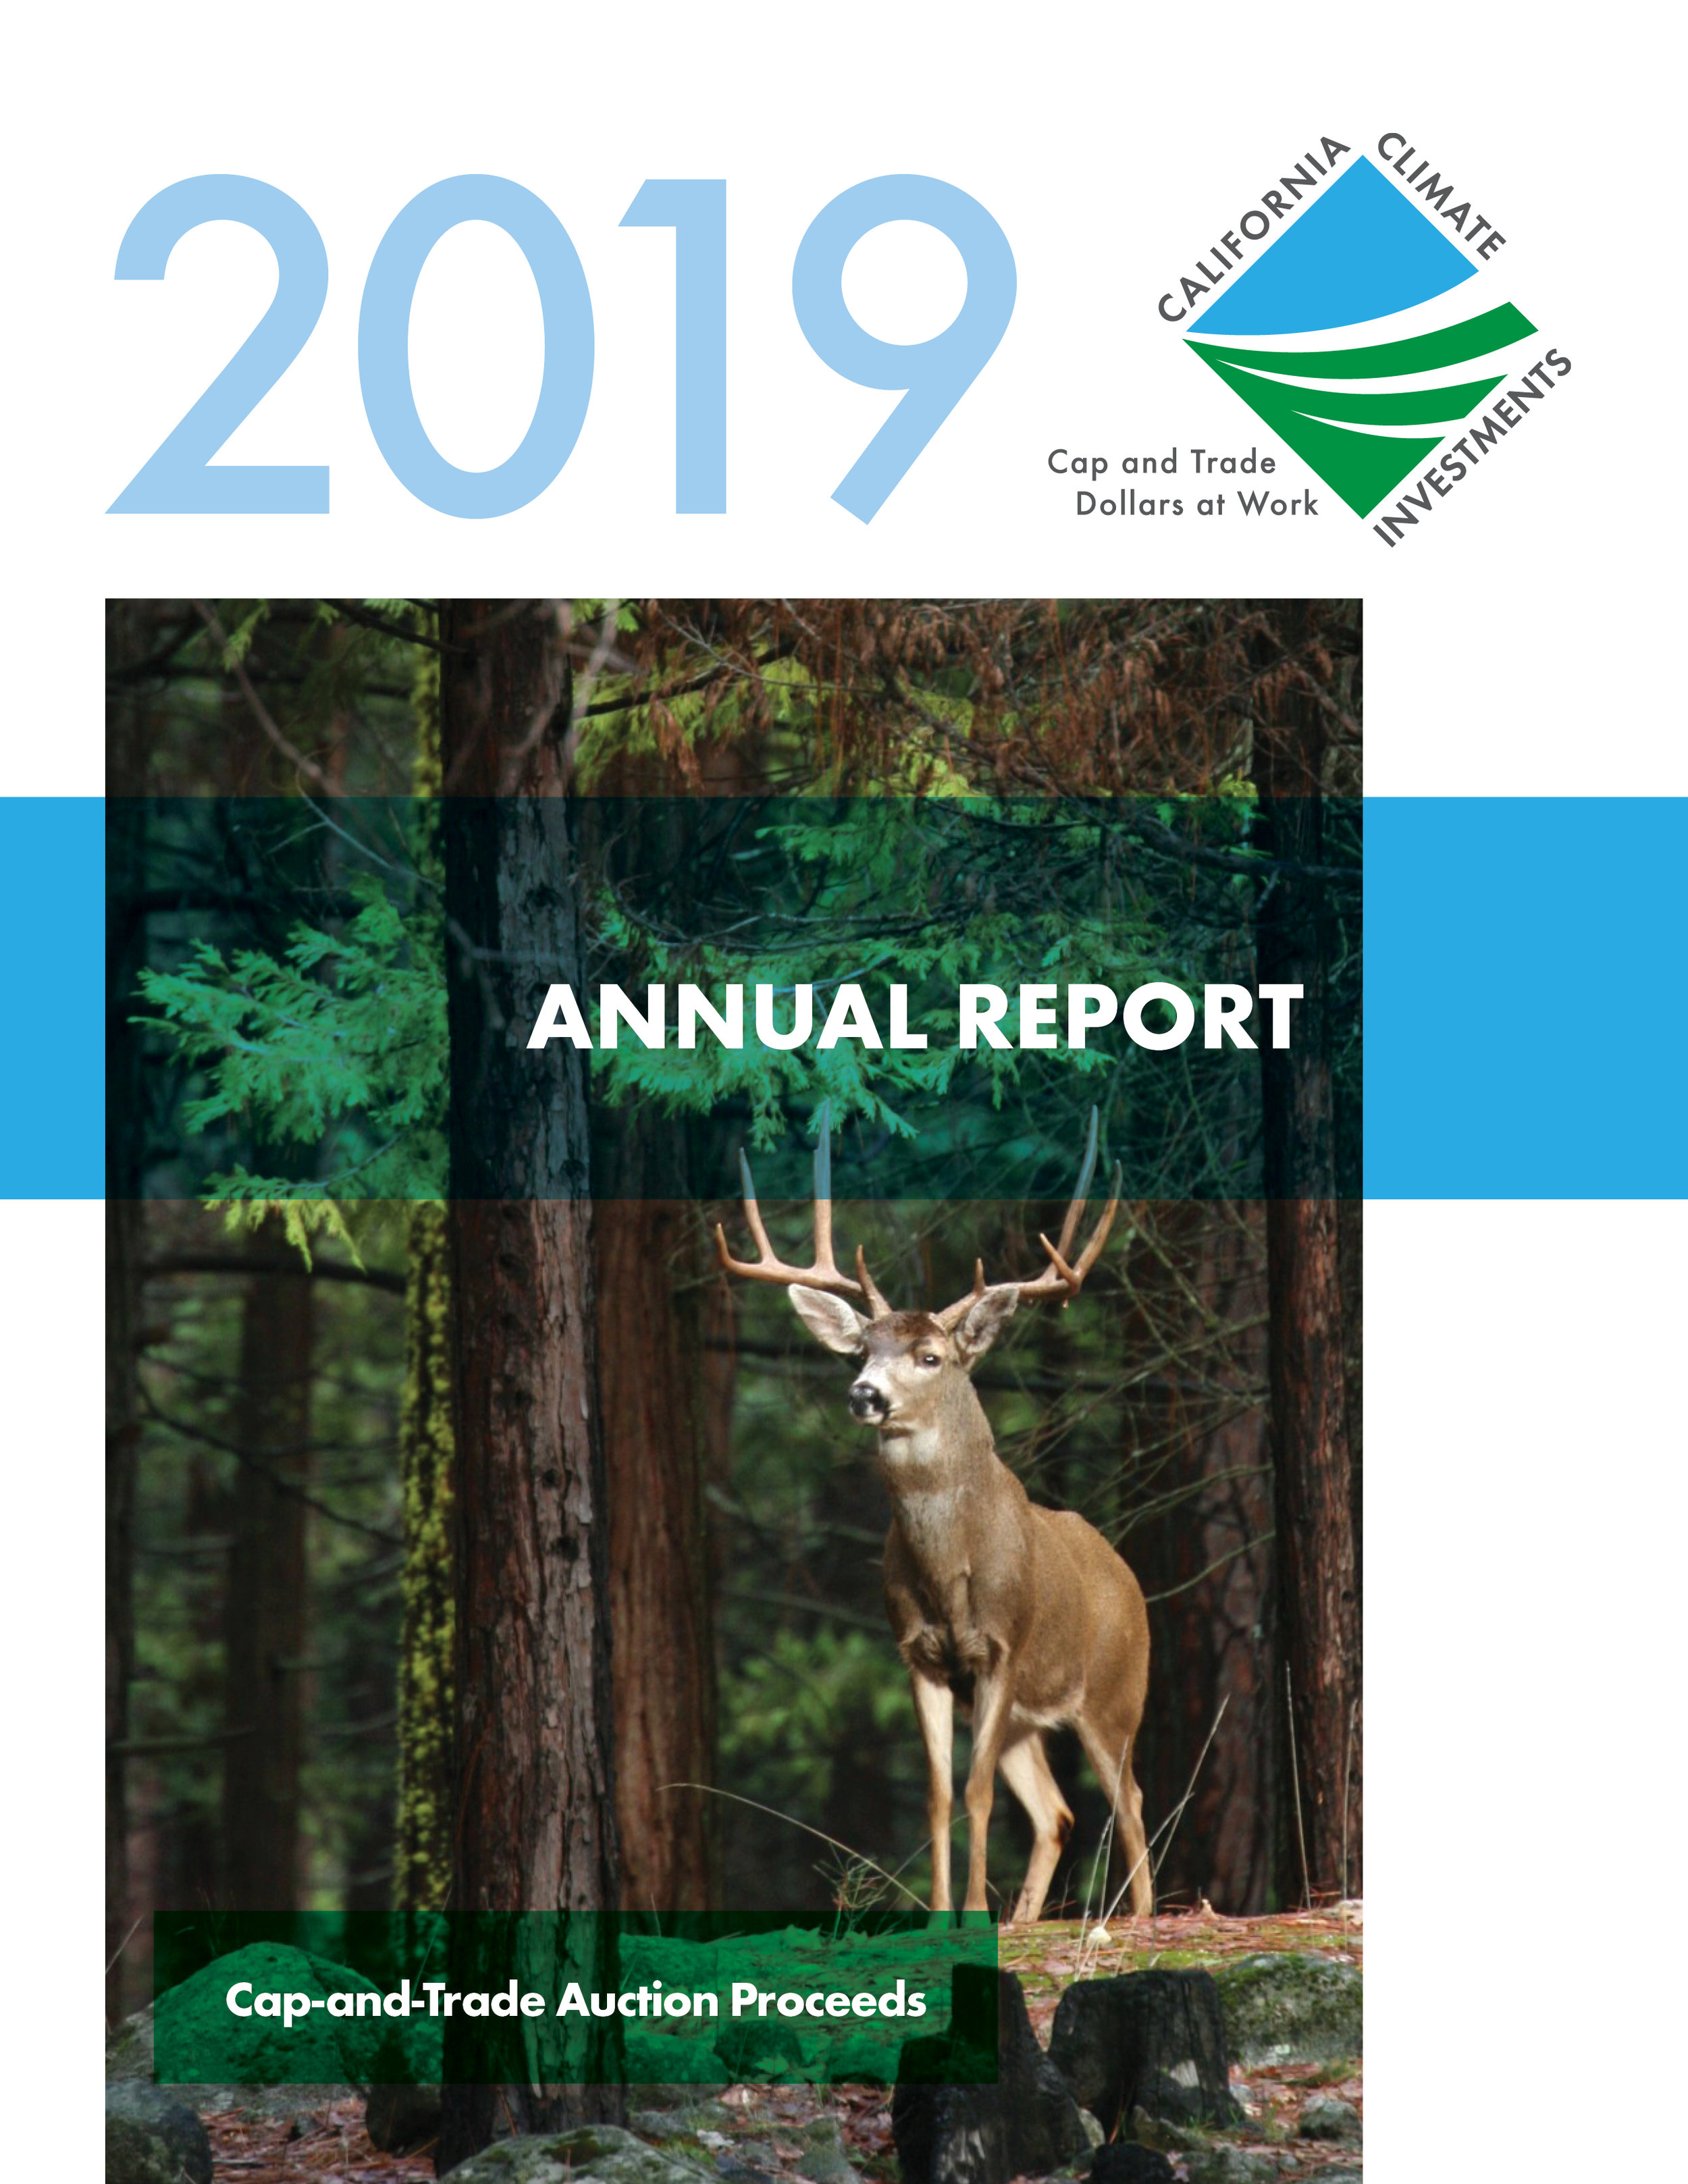 Front Cover: 2019 Annual report to the legislature on California climate investments using cap-and-trade Auction Proceeds. The cover image depicts a deer standing in a forested area. Links to 2019 annual report document.